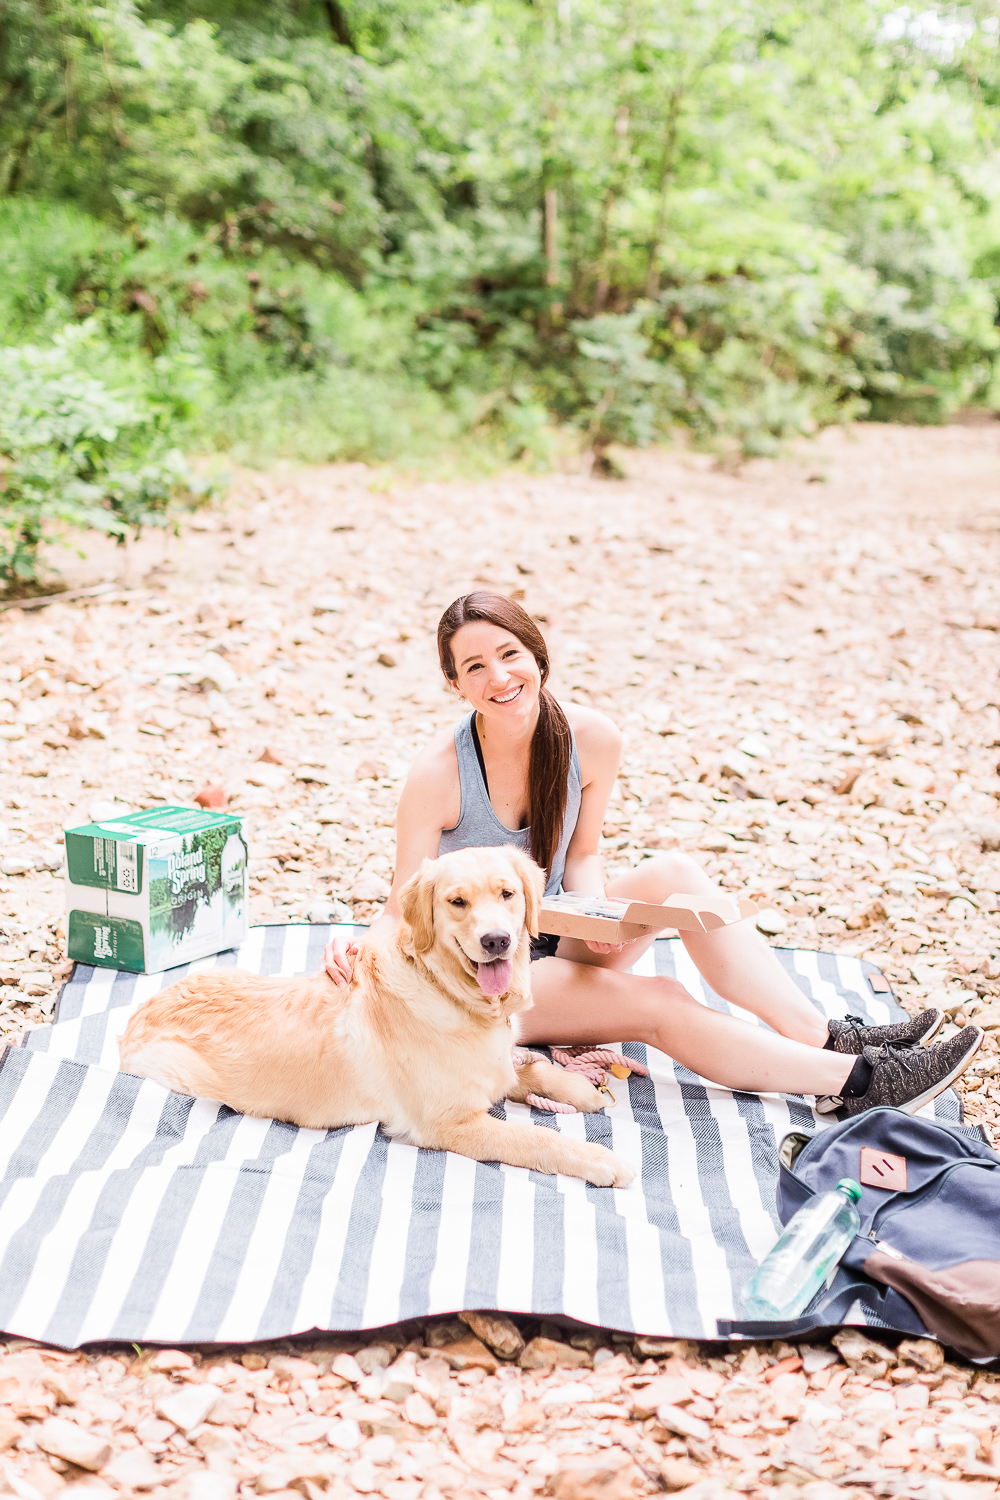 Summer Adventuring: How to Plan the Perfect Hiking Picnic by popular midwest blogger Stephanie Ziajka from Diary of a Debutante, Columbia MO hiking